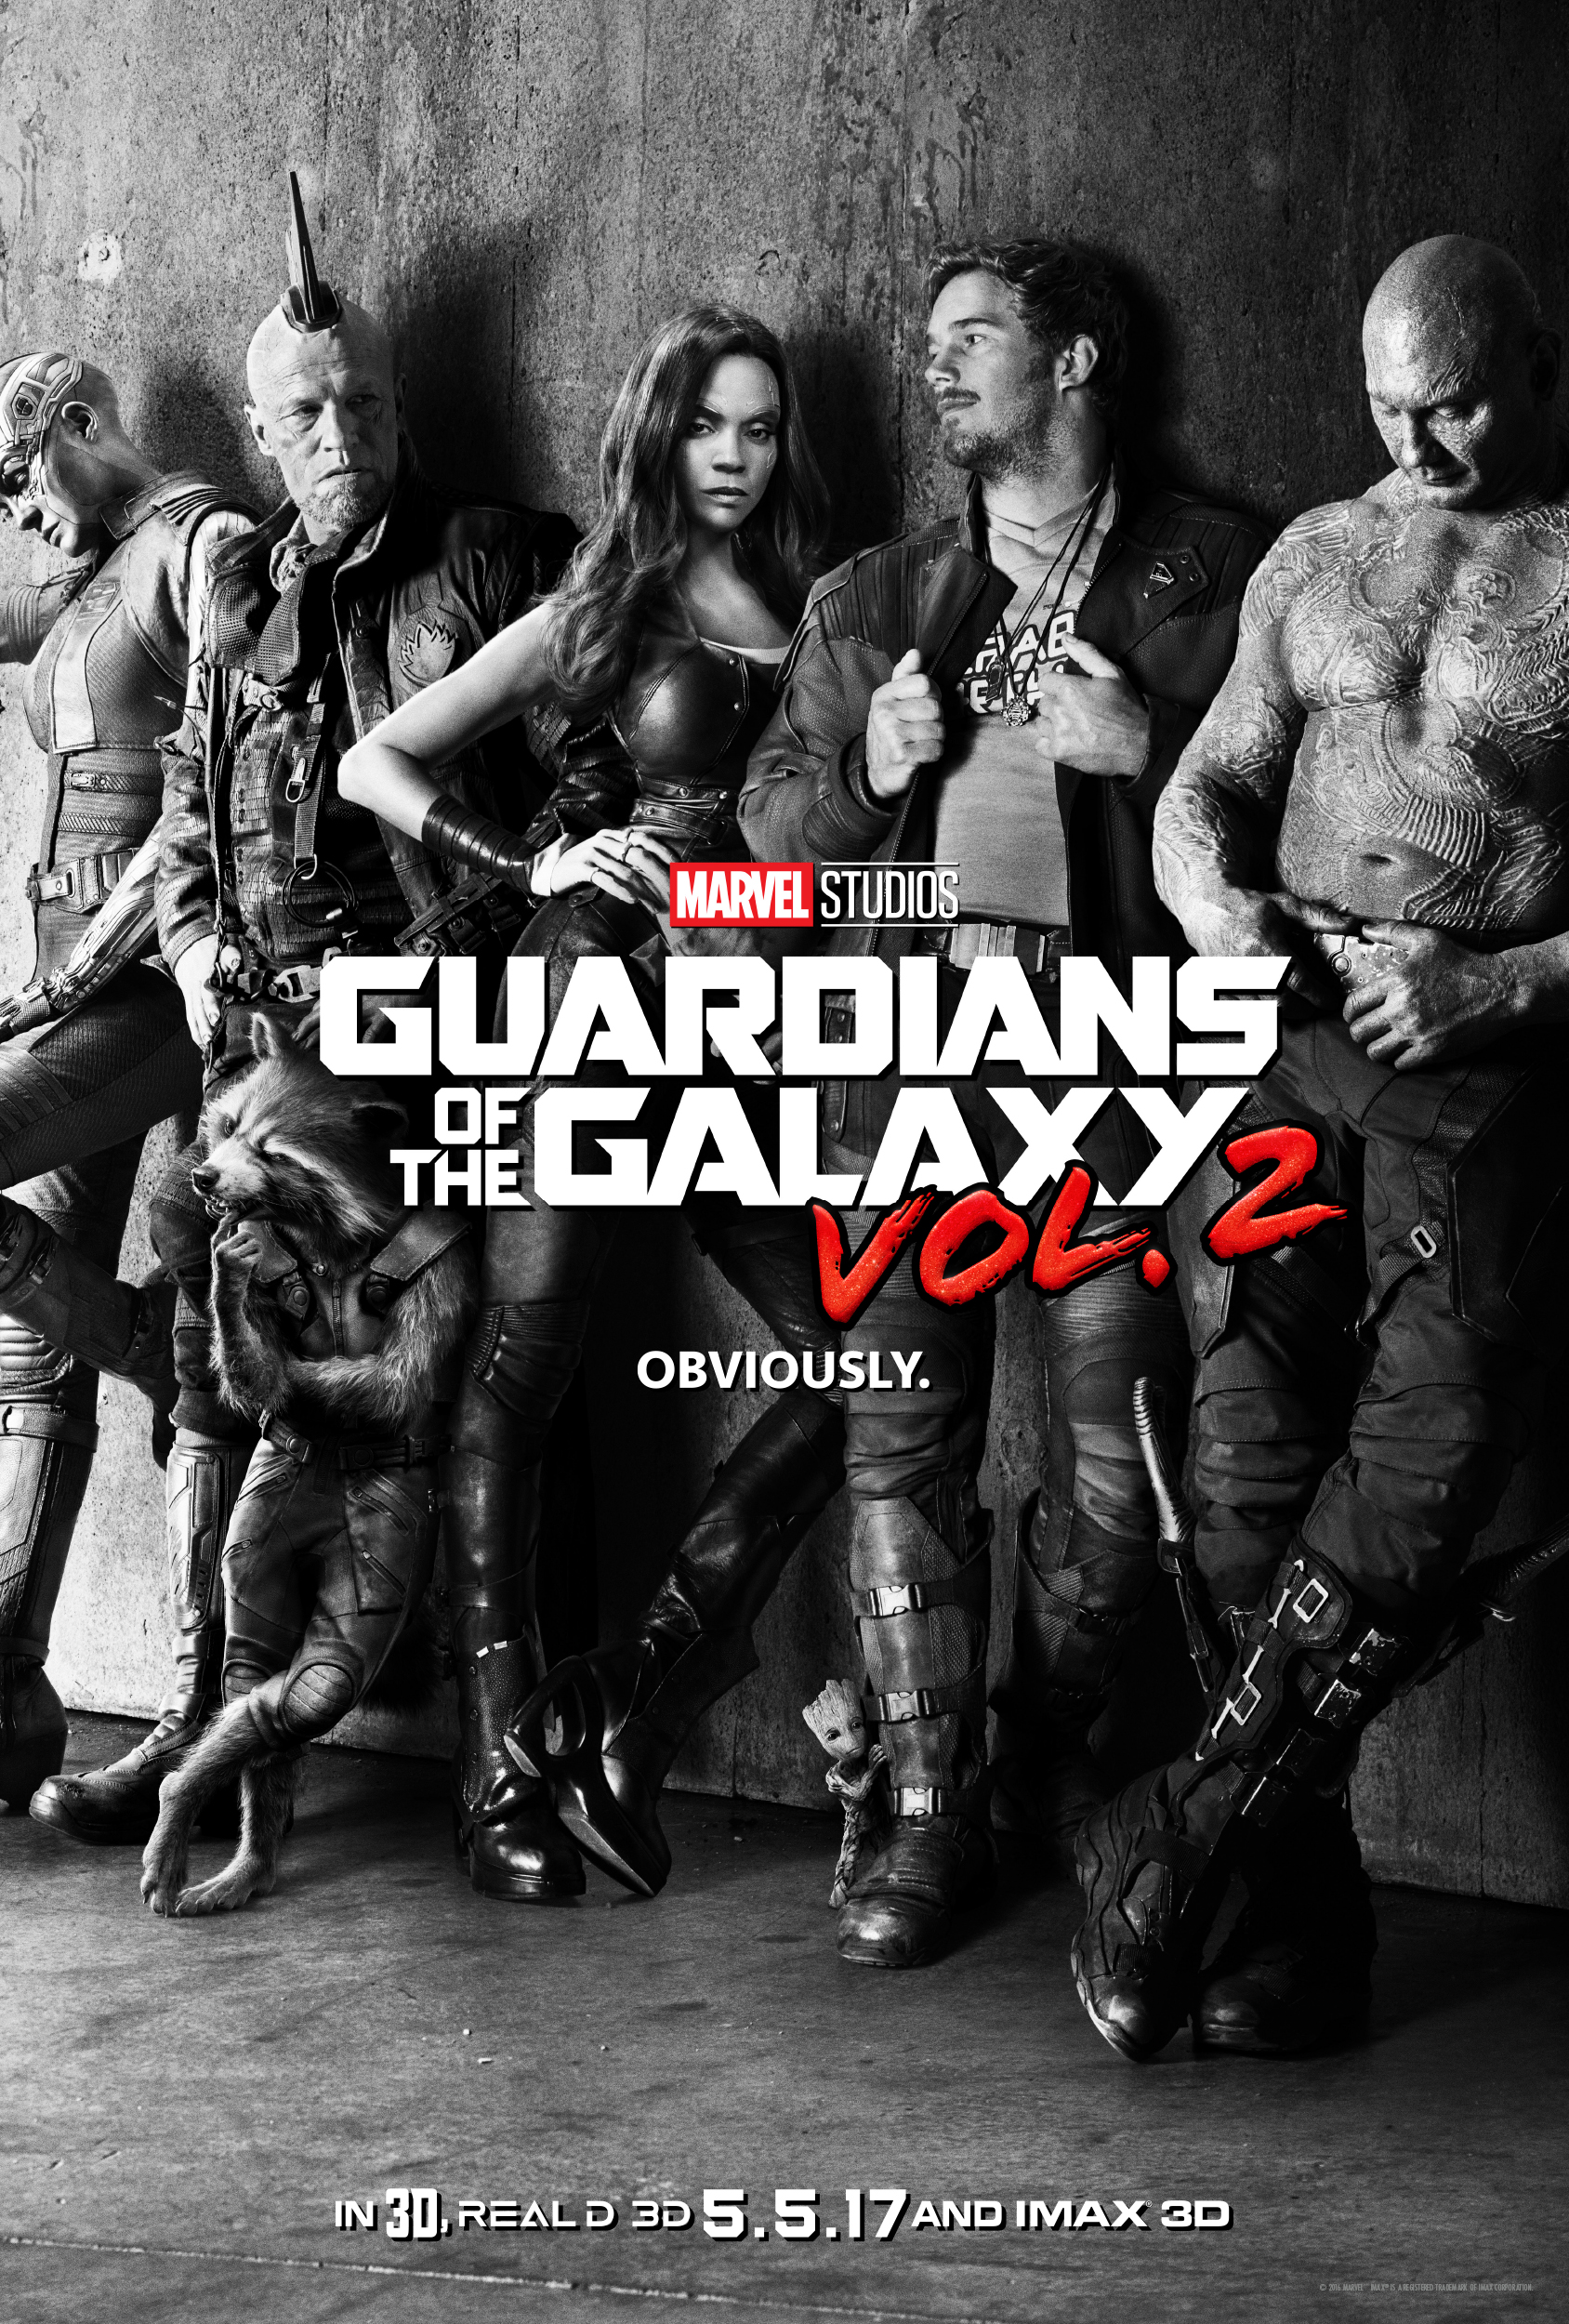 Marvel's GUARDIANS OF THE GALAXY VOL. 2 ~  New Poster & Sneak Peek #GotGVol2